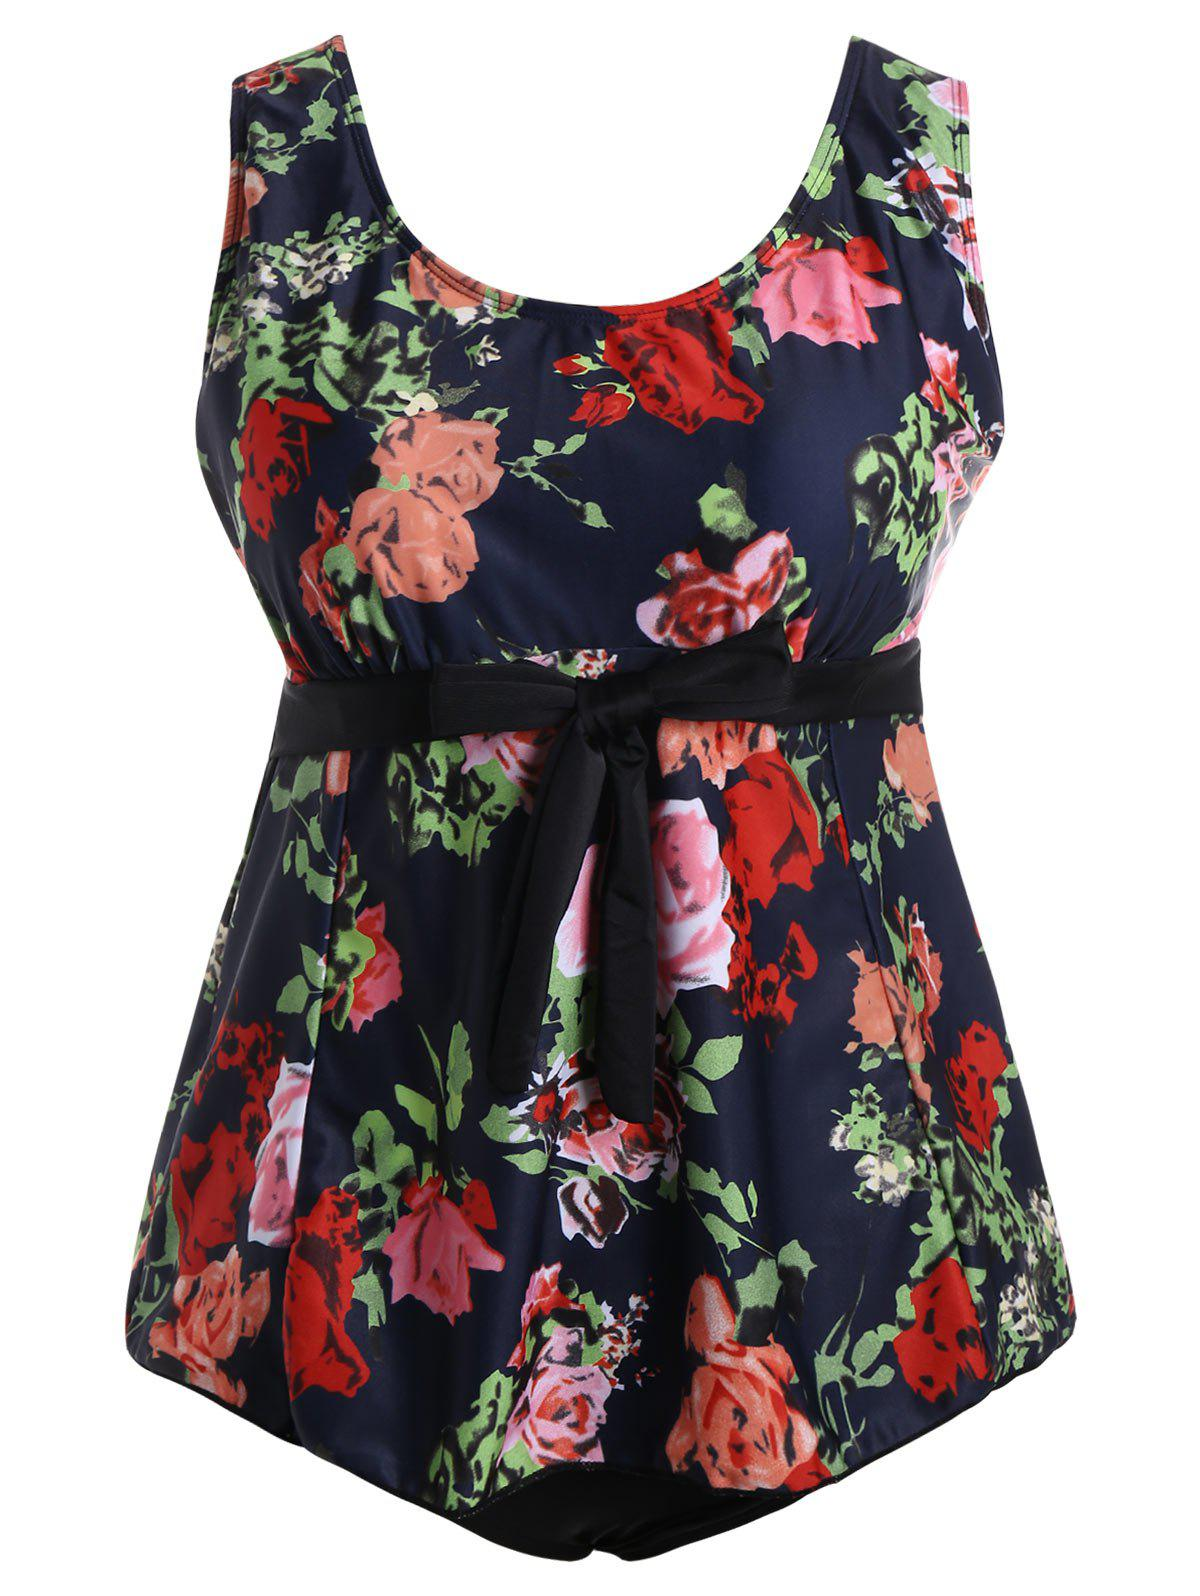 Padded Floral High Waisted Plus Size Bathing Suit - multicolor 3XL